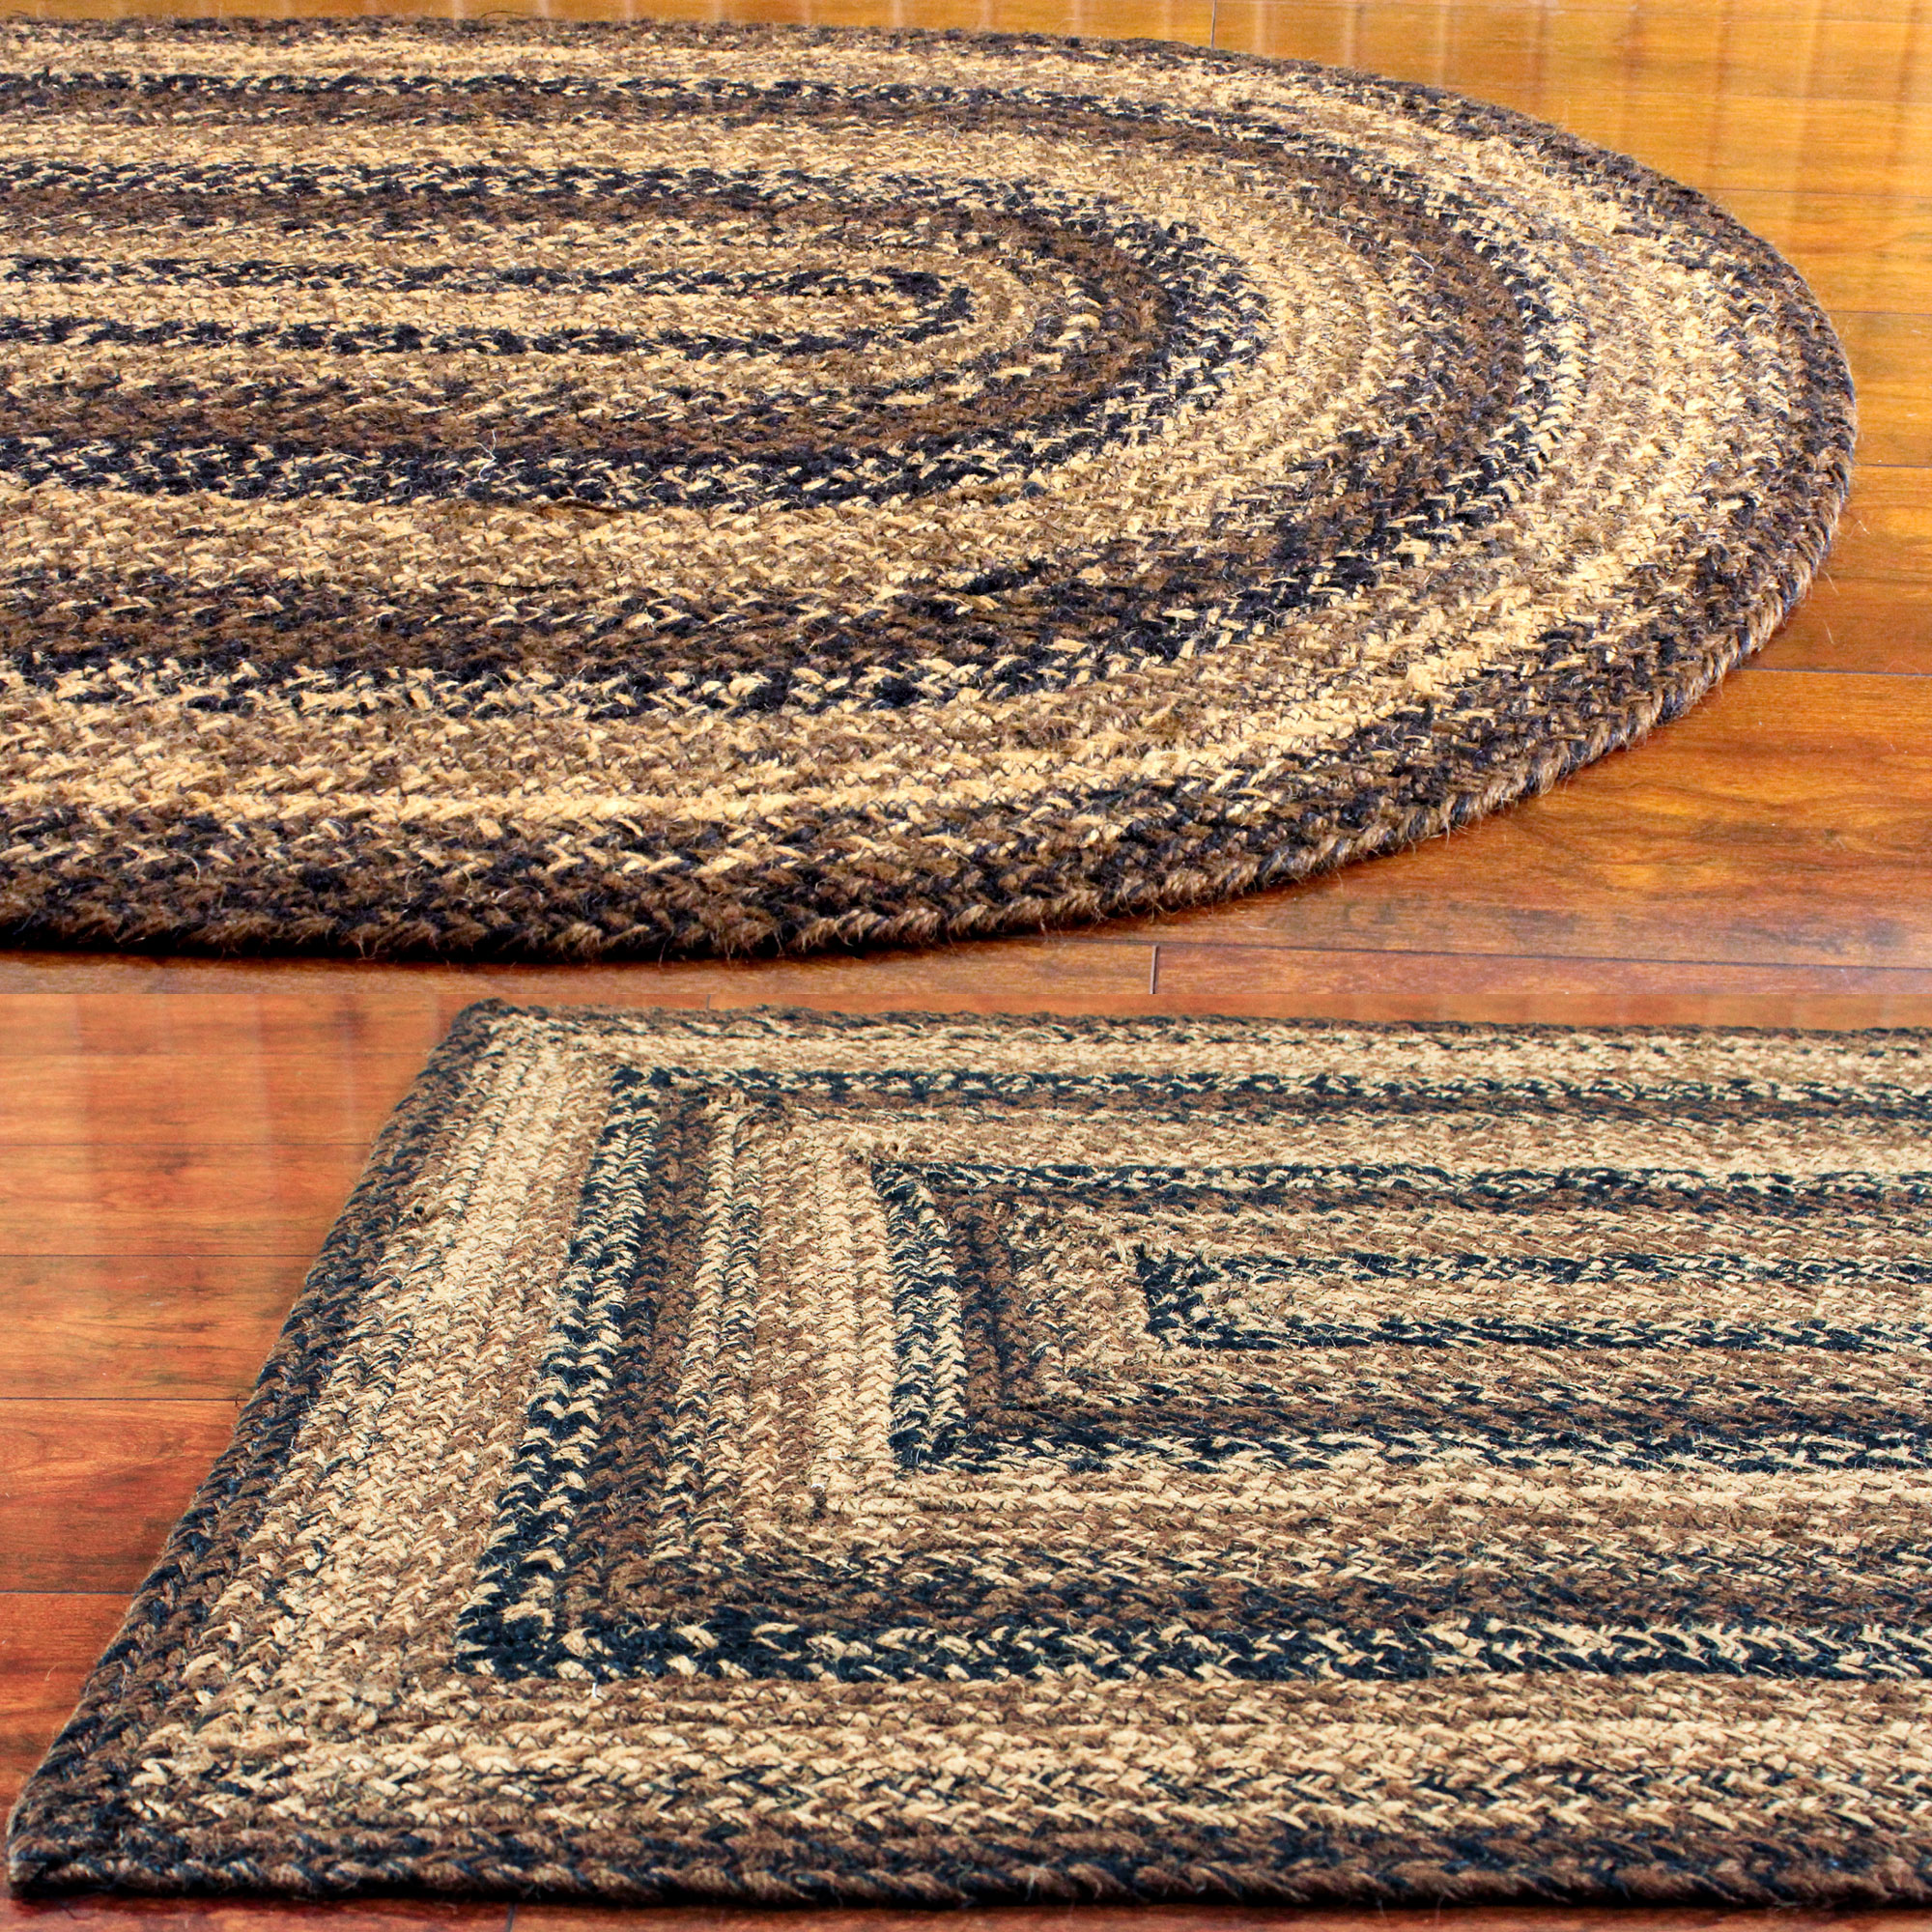 Fantastic braided rug for floorings and rugs ideas with round braided rugs and braided area rugs